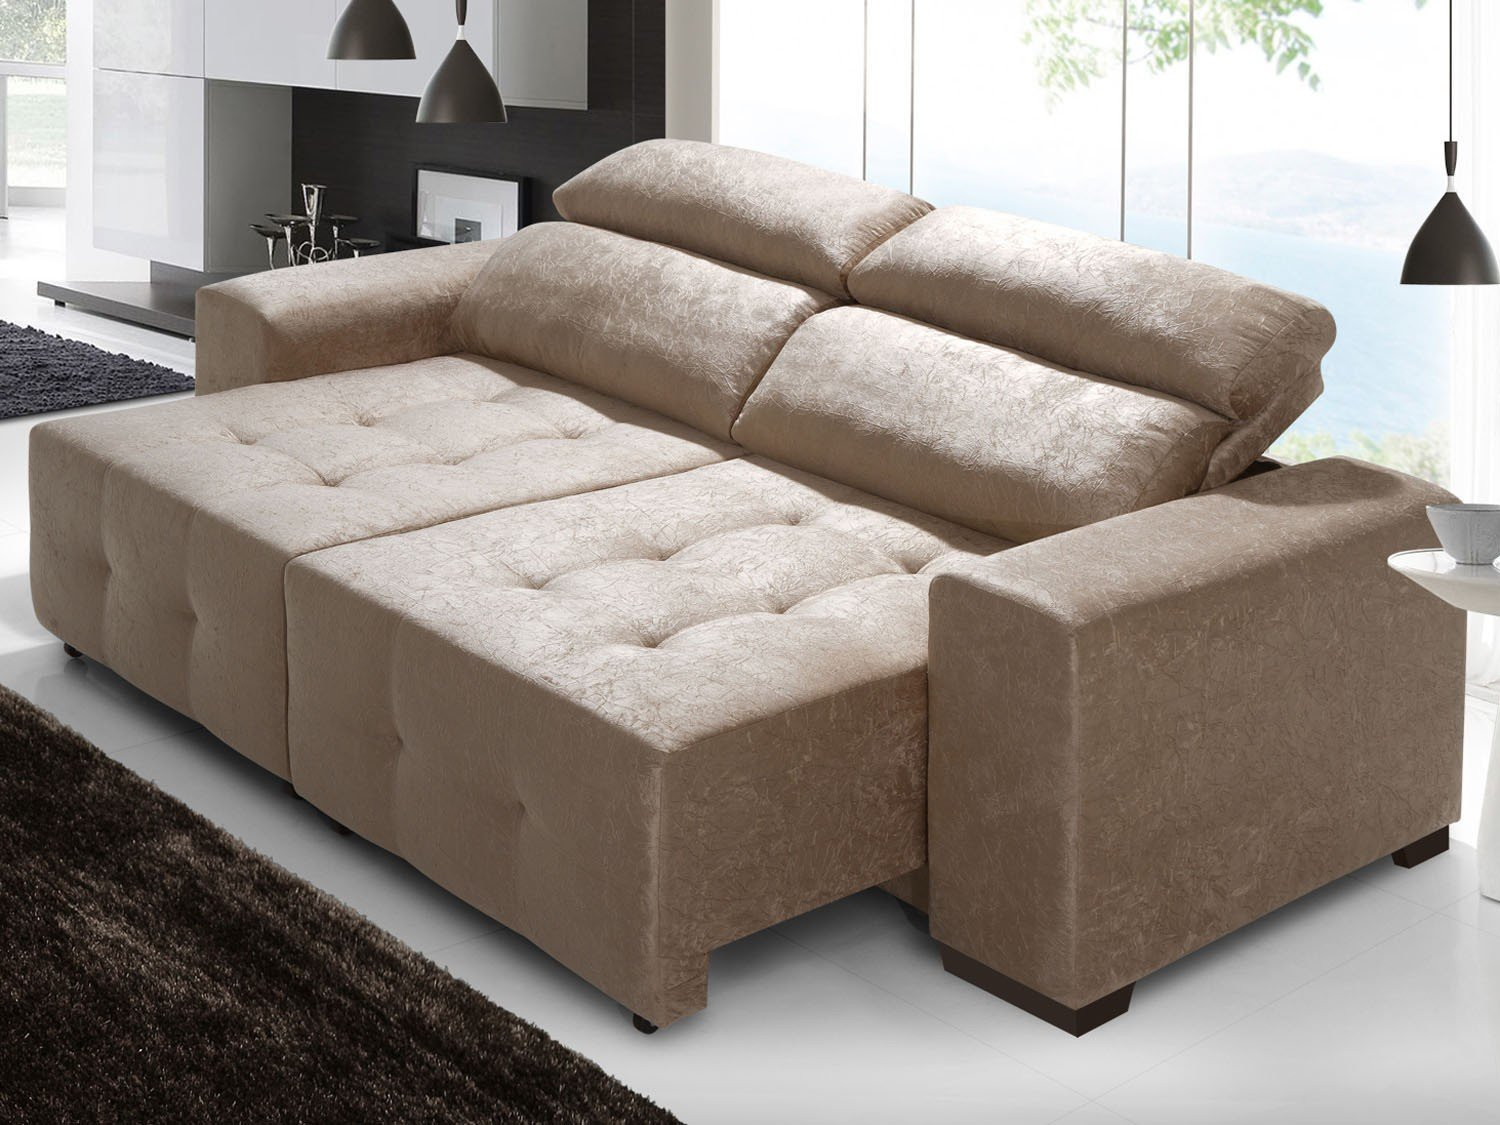 Sof retr til e reclin vel 2 lugares new veneza lima for Sofa 03 lugares retratil e reclinavel